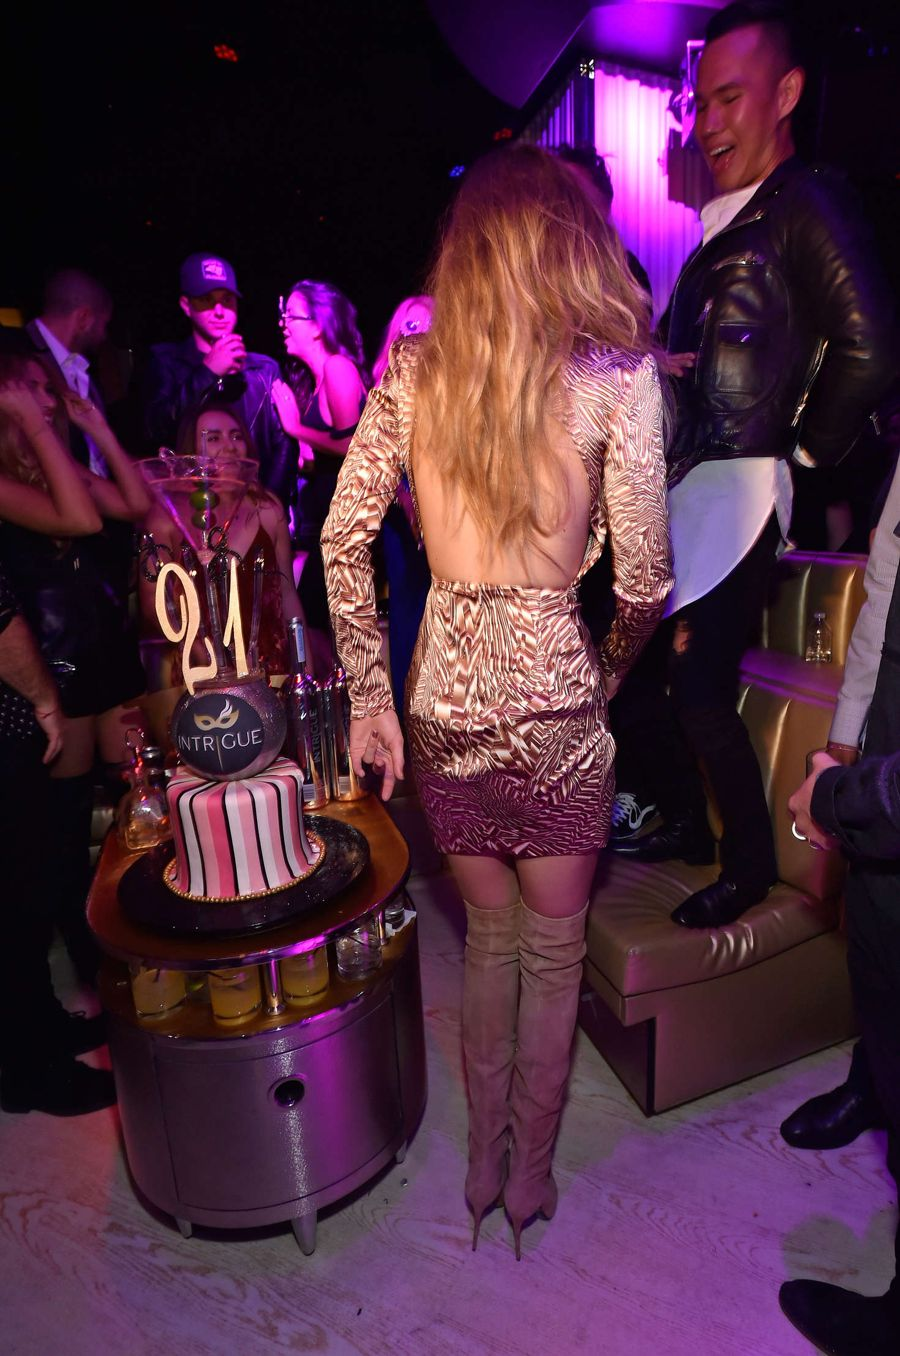 Gigi Hadid - Celebration of her 21st birthday in Vegas